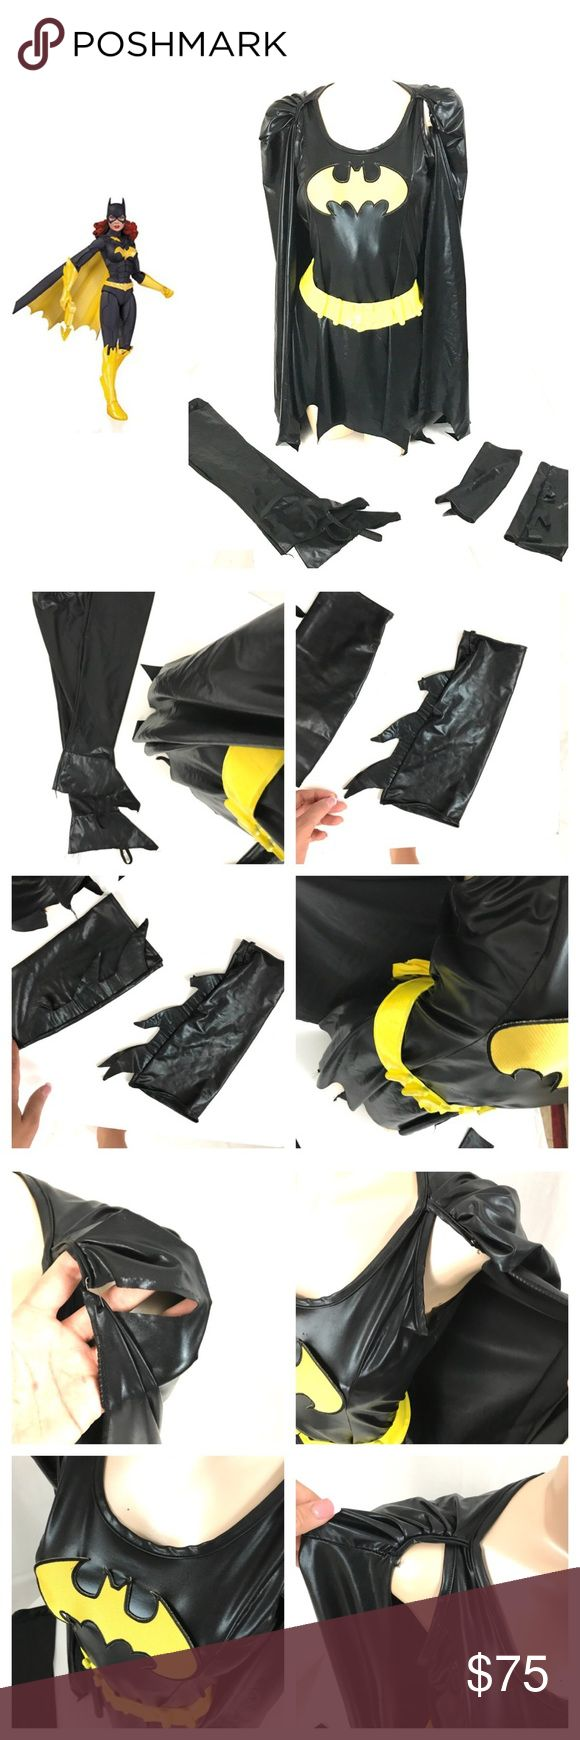 •WOMENS• Batgirl Halloween costume COSTUME: bat girl - batman - costume   SIZE: one size fits most   CONDITION: gently used. The cape has a popped seam at the shoulder. Held together by a safety pin   # OF PIECES -4 dress with attached cape, belt, boot tops, arm bands,   AVL COSTUME MATCHES? Yes, adult batman and child batkid Other